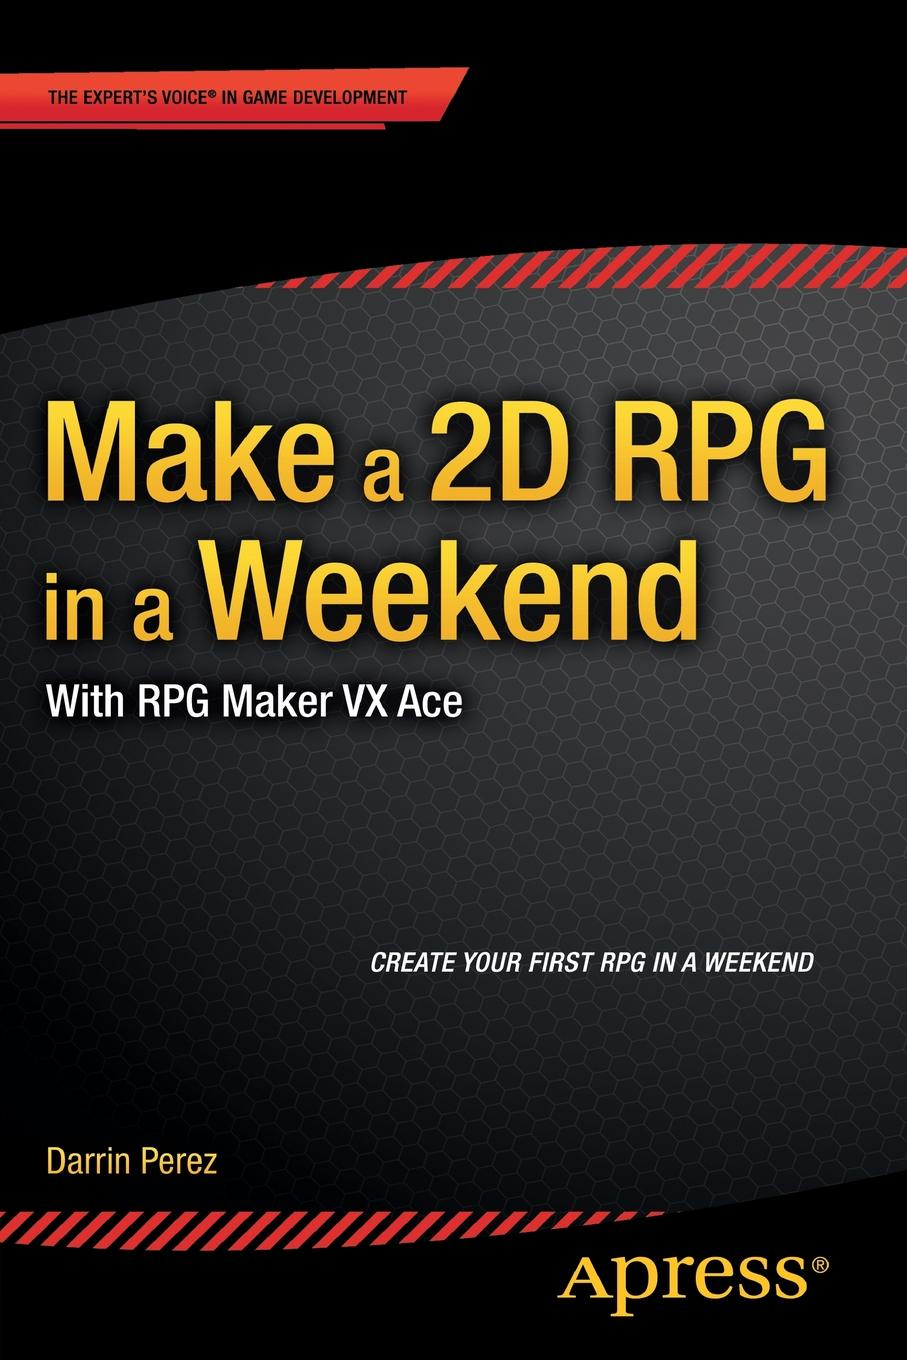 Darrin Perez Make a 2D RPG in a Weekend. With RPG Maker VX Ace